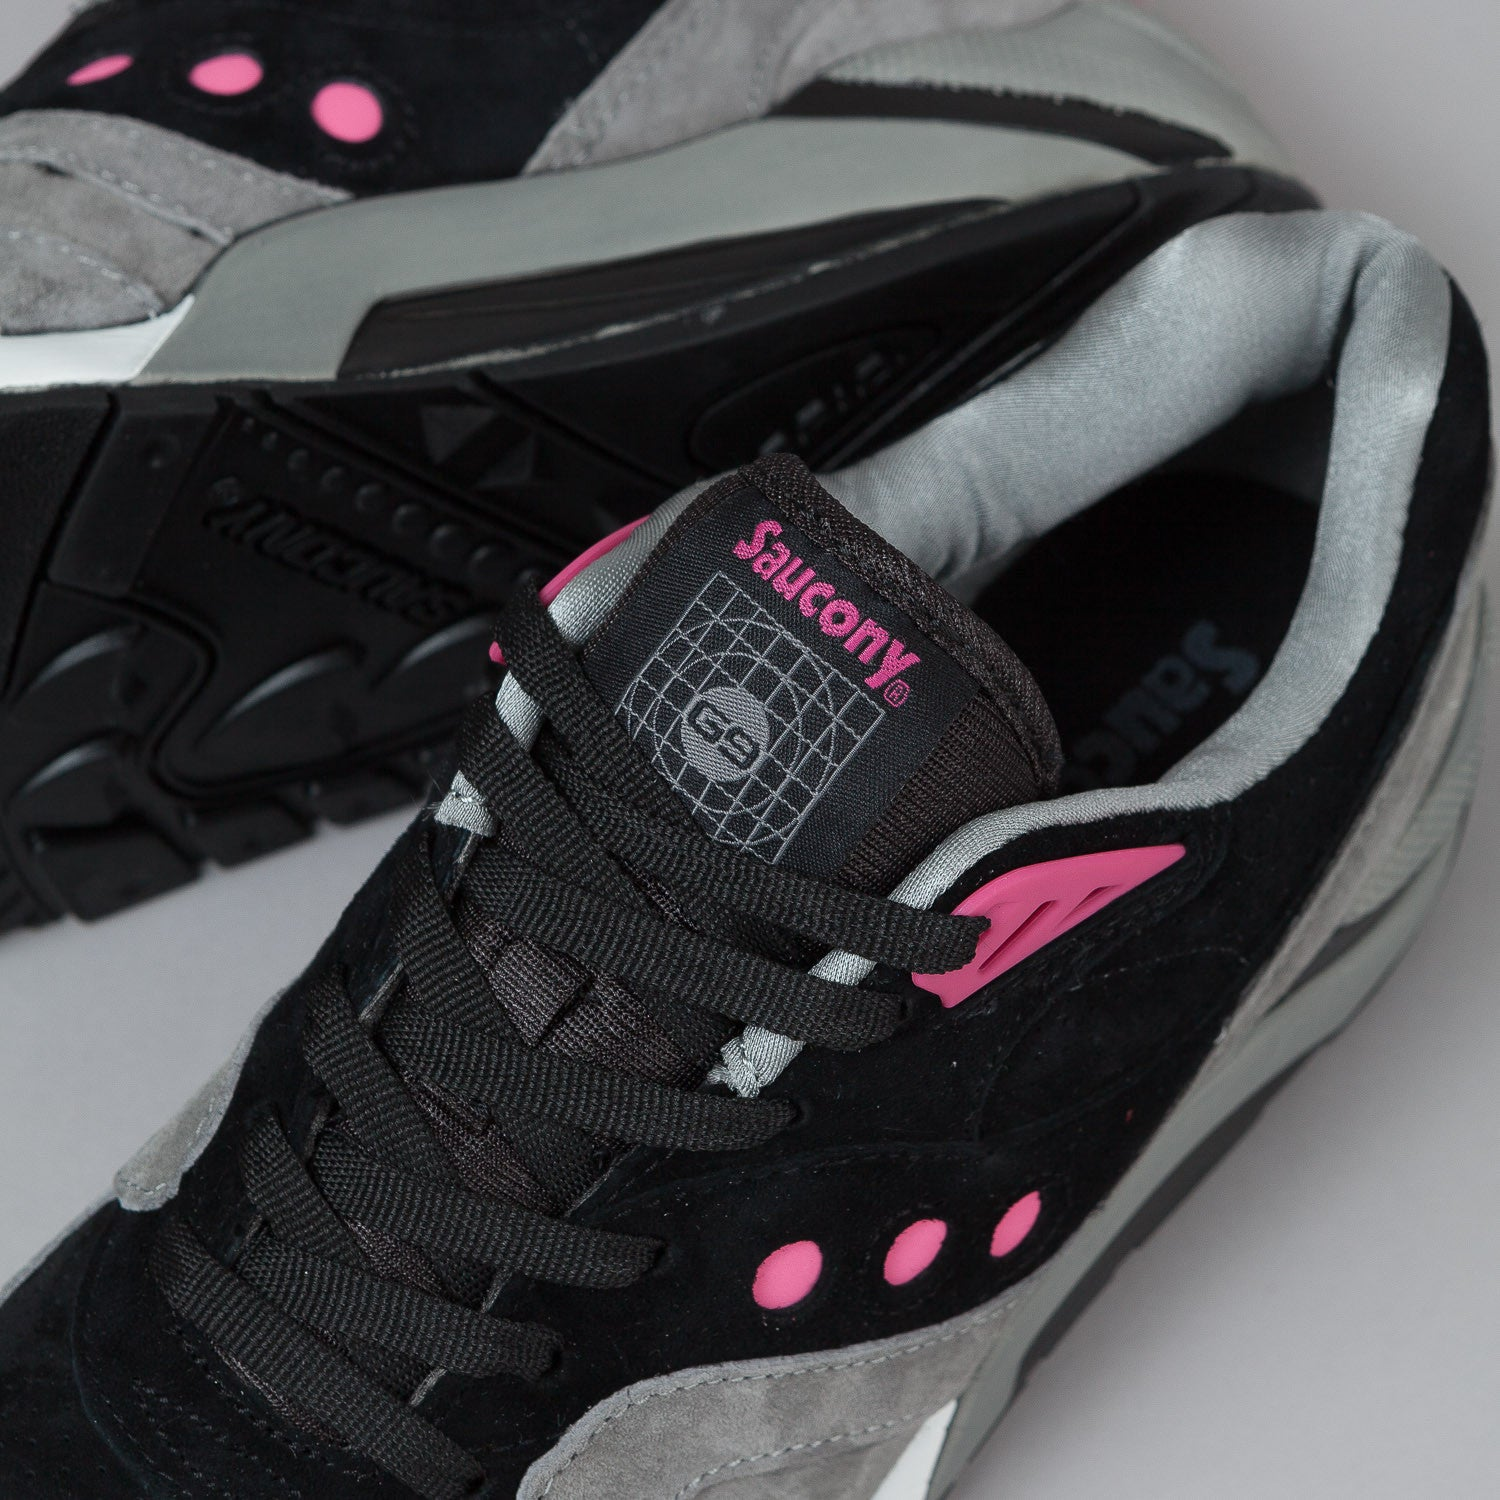 Saucony G9 Control Shoes - Black / Grey